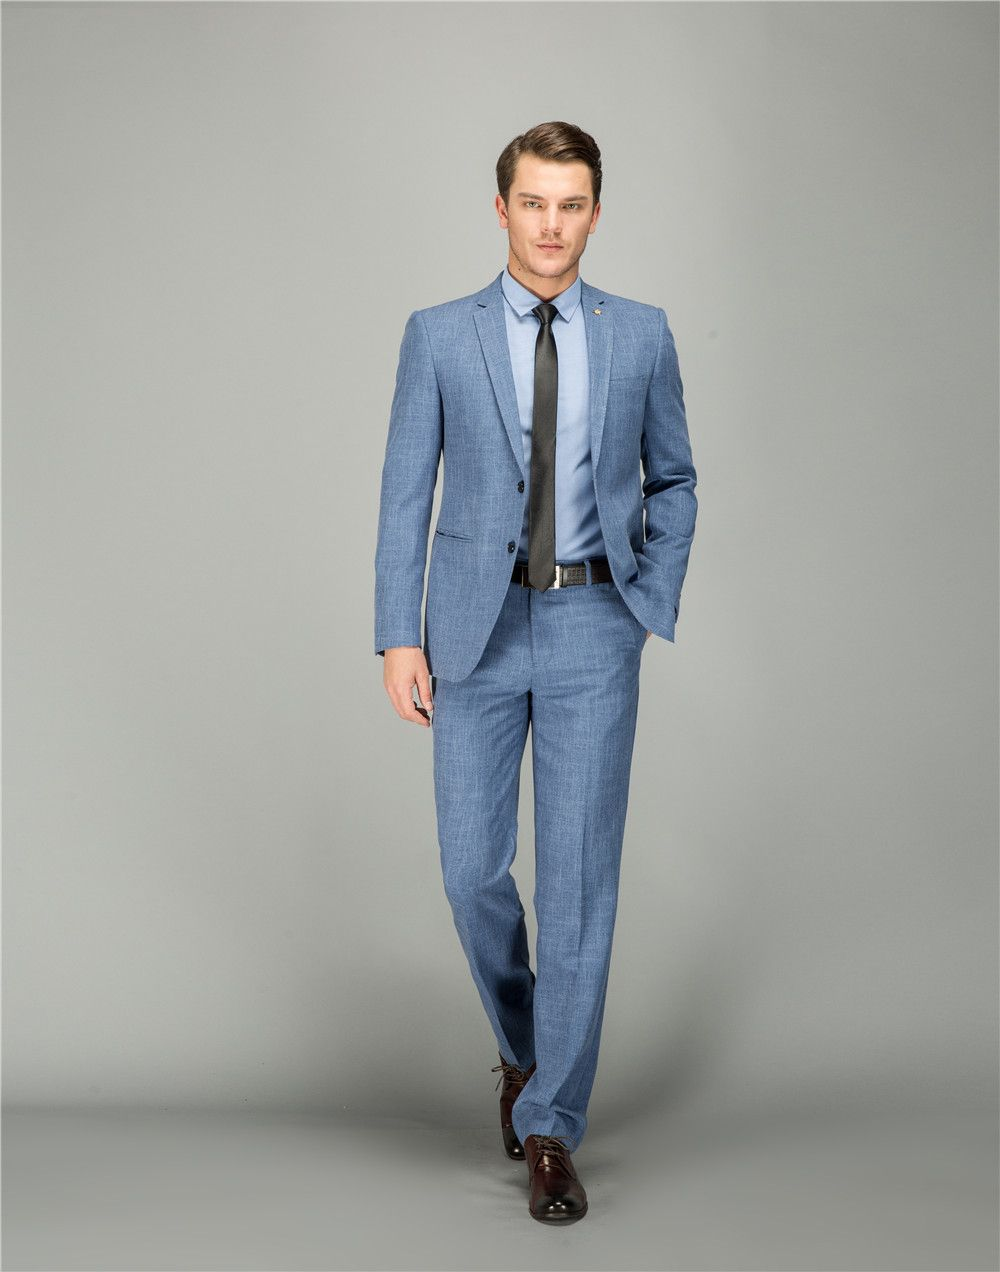 66c3ad0ee74 Suit Men Light Blue Wool Wedding Fashion Tailor Made Suit Slim Fit Leisure  2018 Costume Homme Mariage 15953